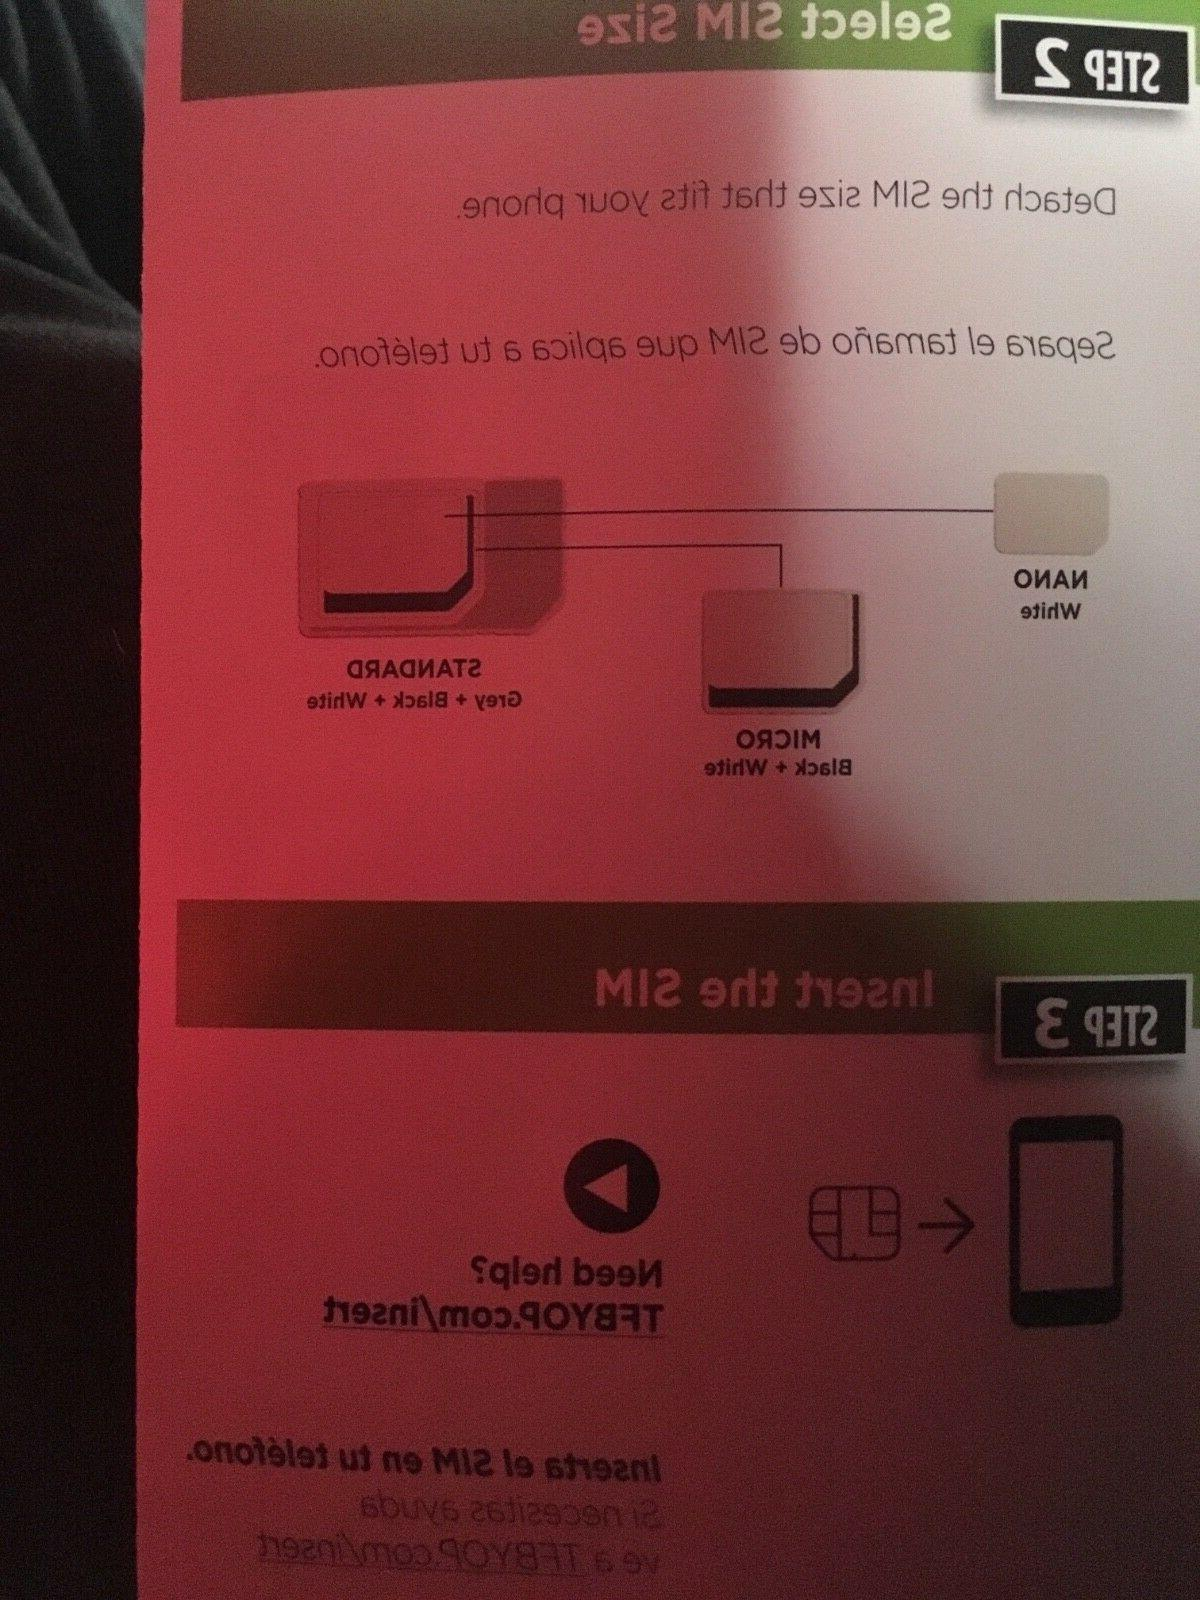 T-mobile SIM NEVER USED hotspots,phones,tablets